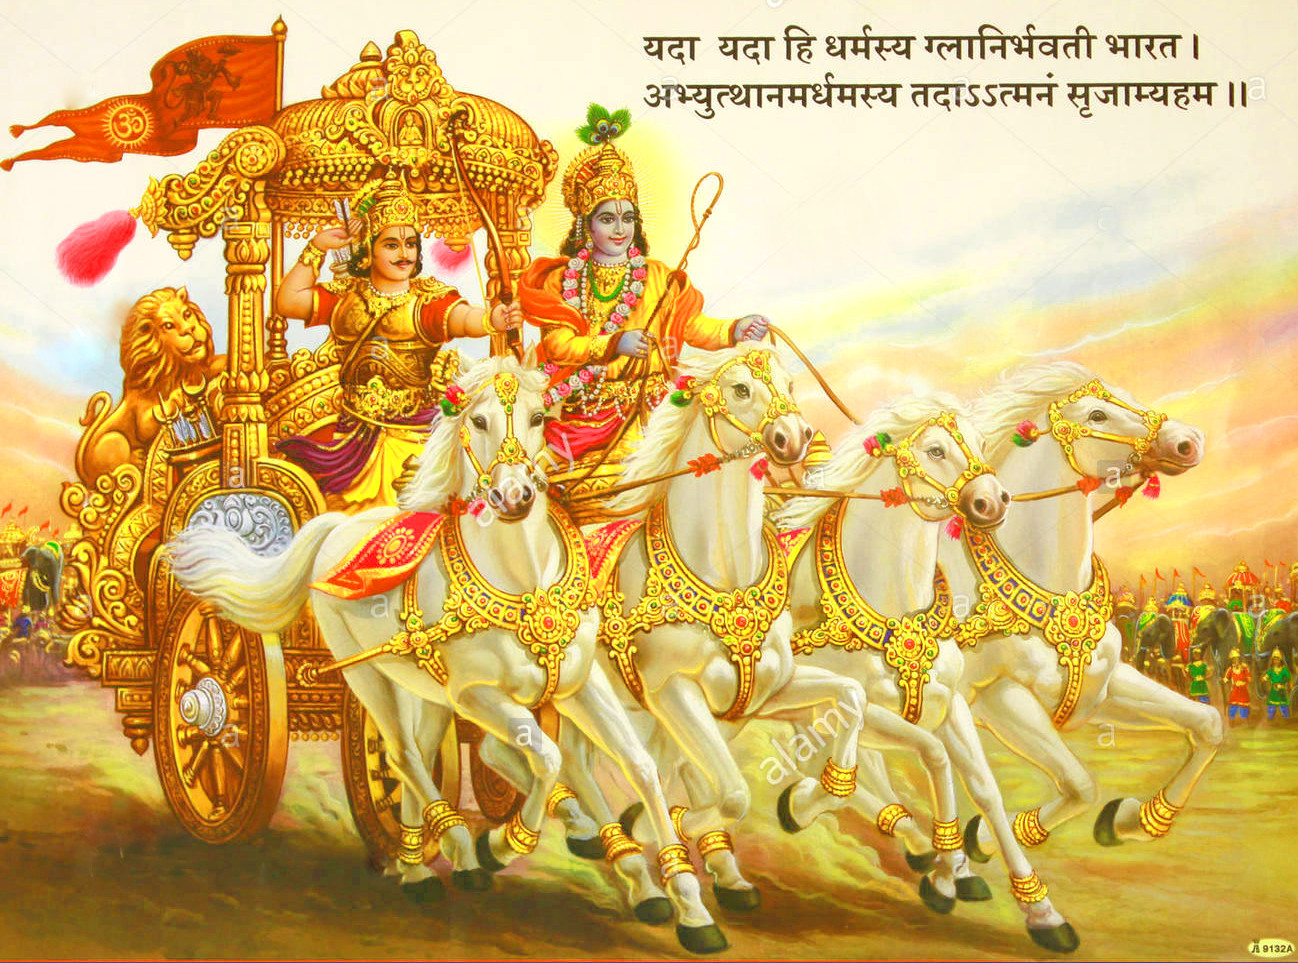 Talks on the Bhagavad Gita (Hindi) – Recorded Class Videos